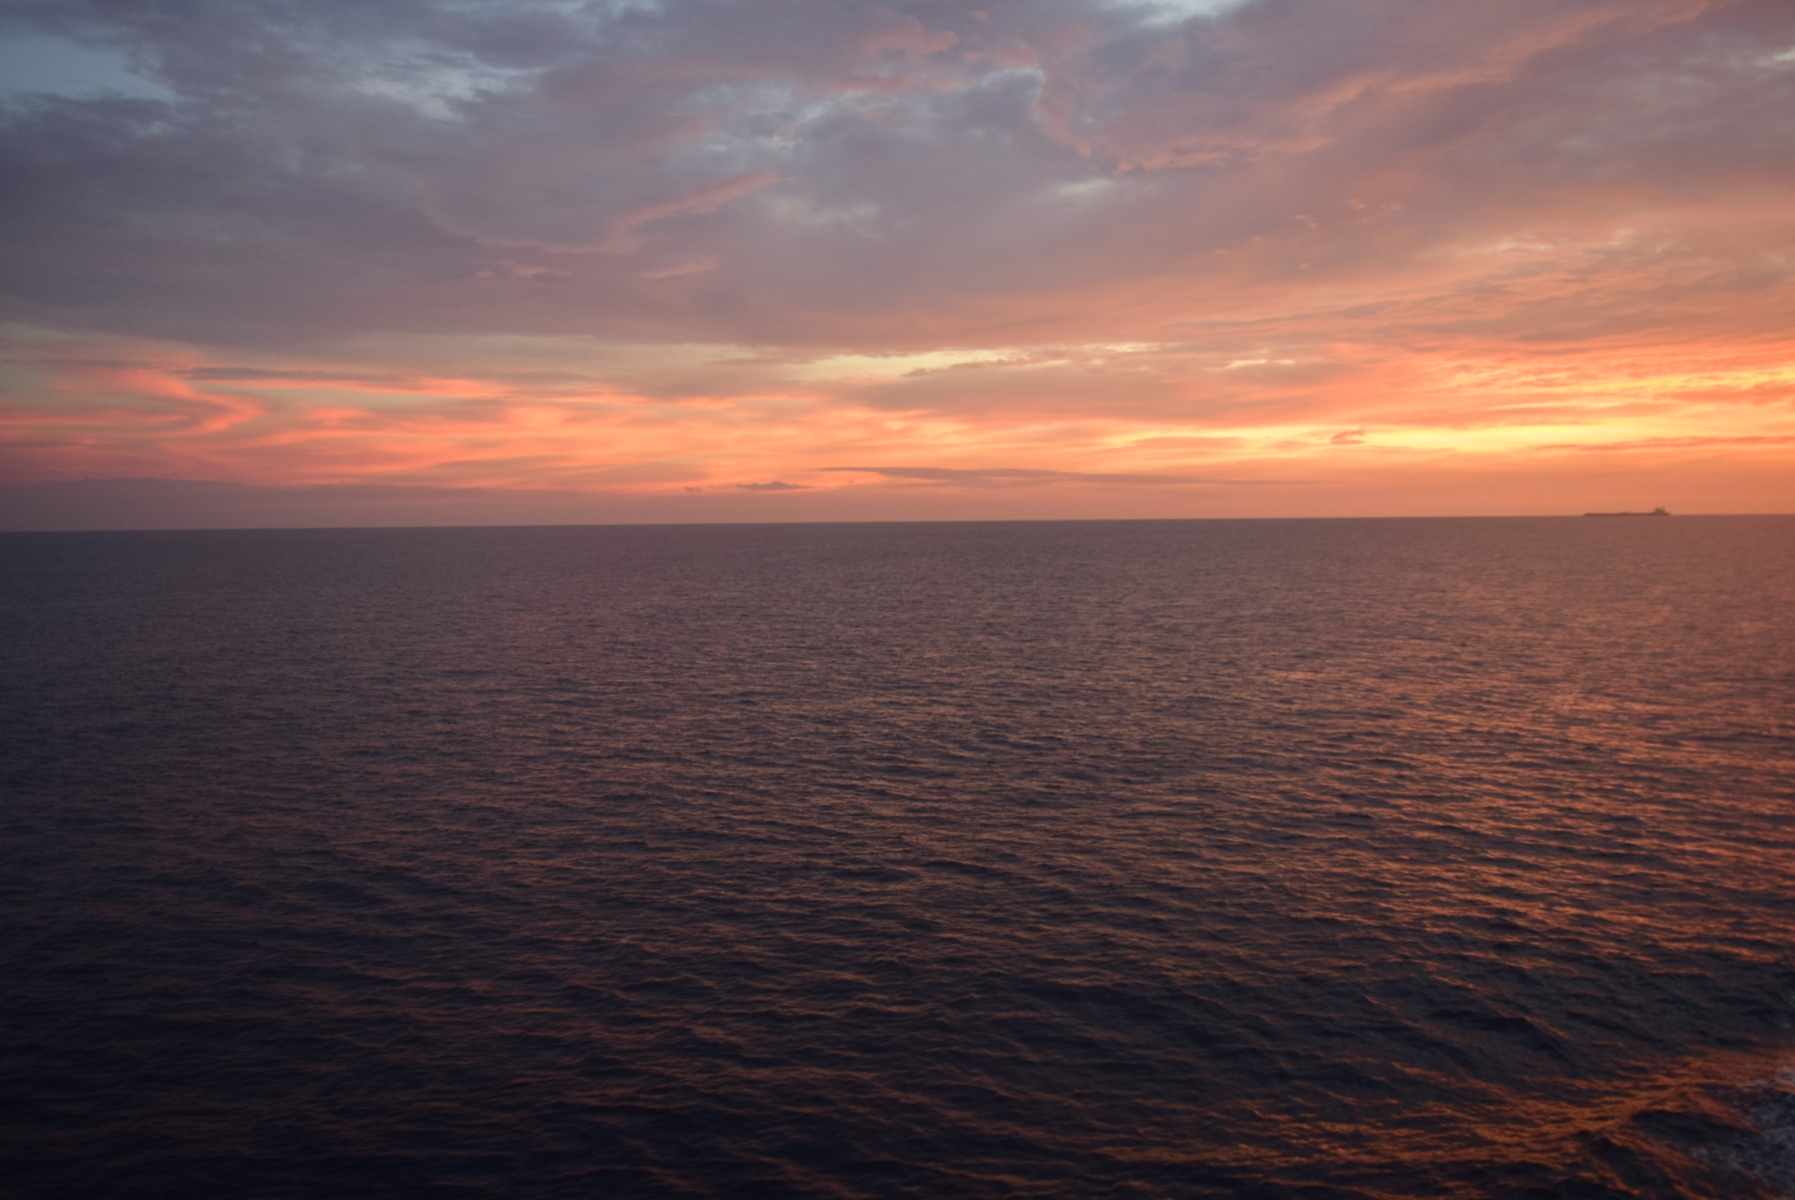 View from Ship deck